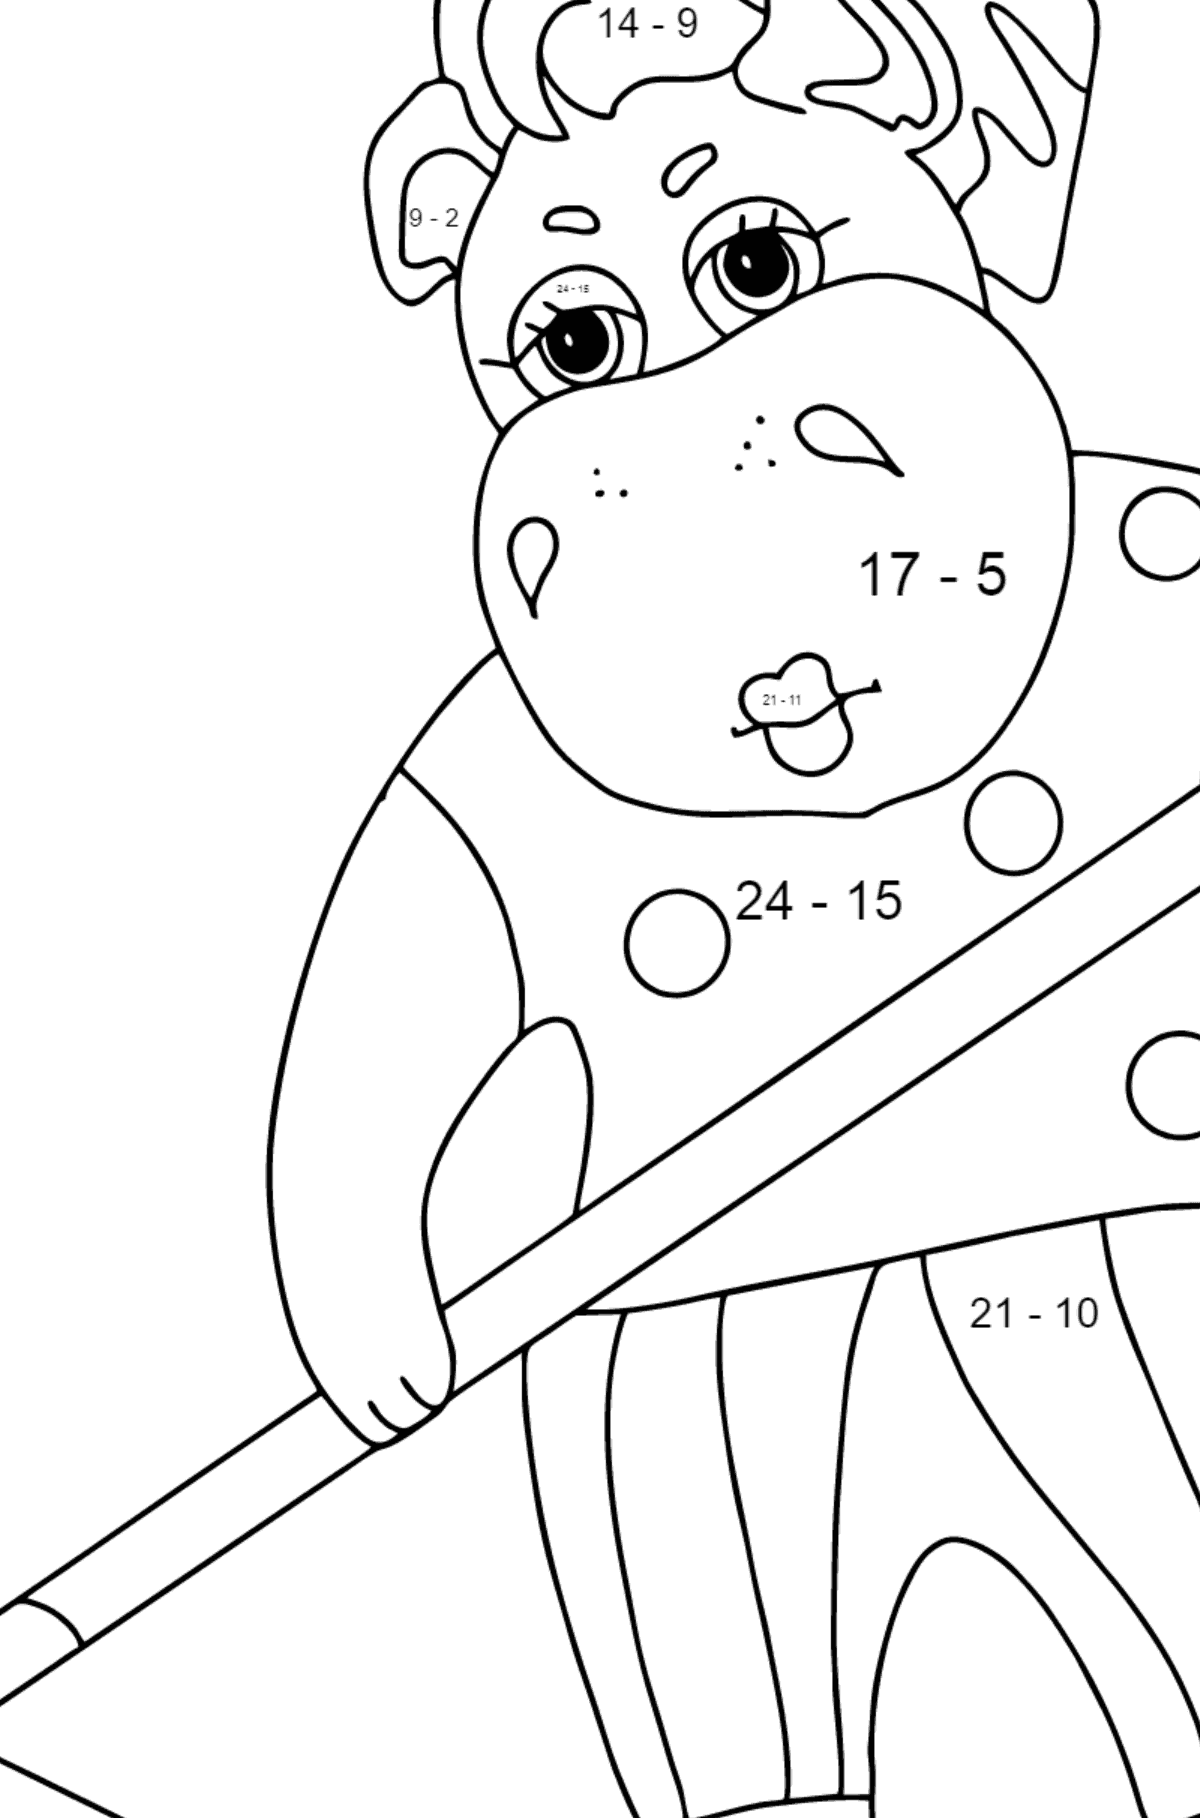 Coloring Page - A Hippo is Collecting Autumn Leaves for Kids  - Color by Number Substraction